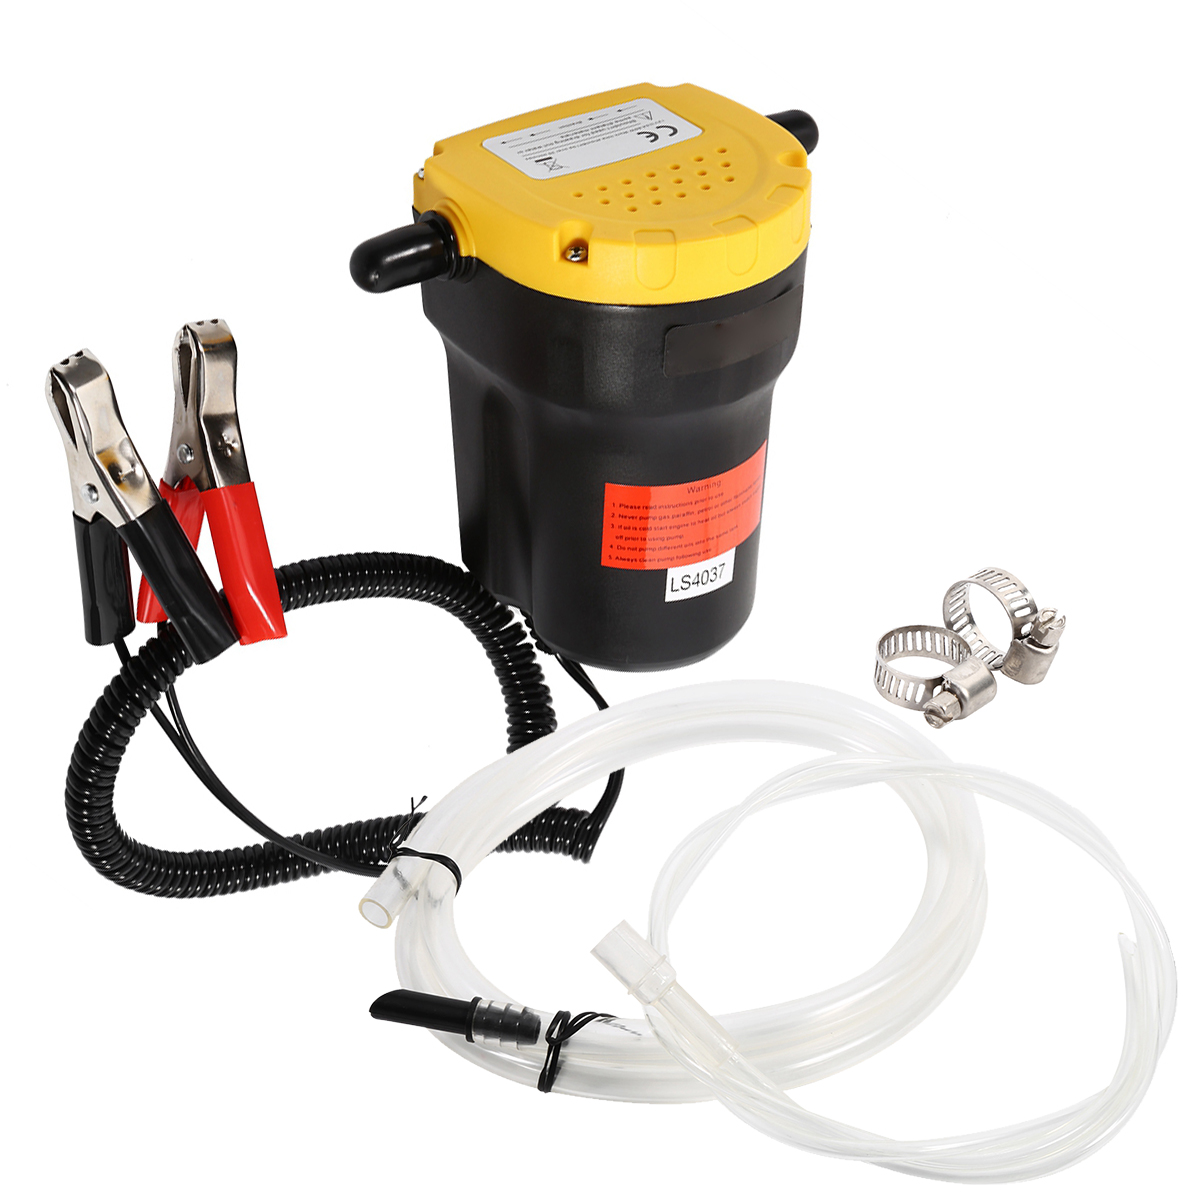 12V Diesel Oil Fluid Transfer Extractor Pump 60W Electric Diesel Fluid Extractor Transfer Suction Pump For Car Motorcycle Boat